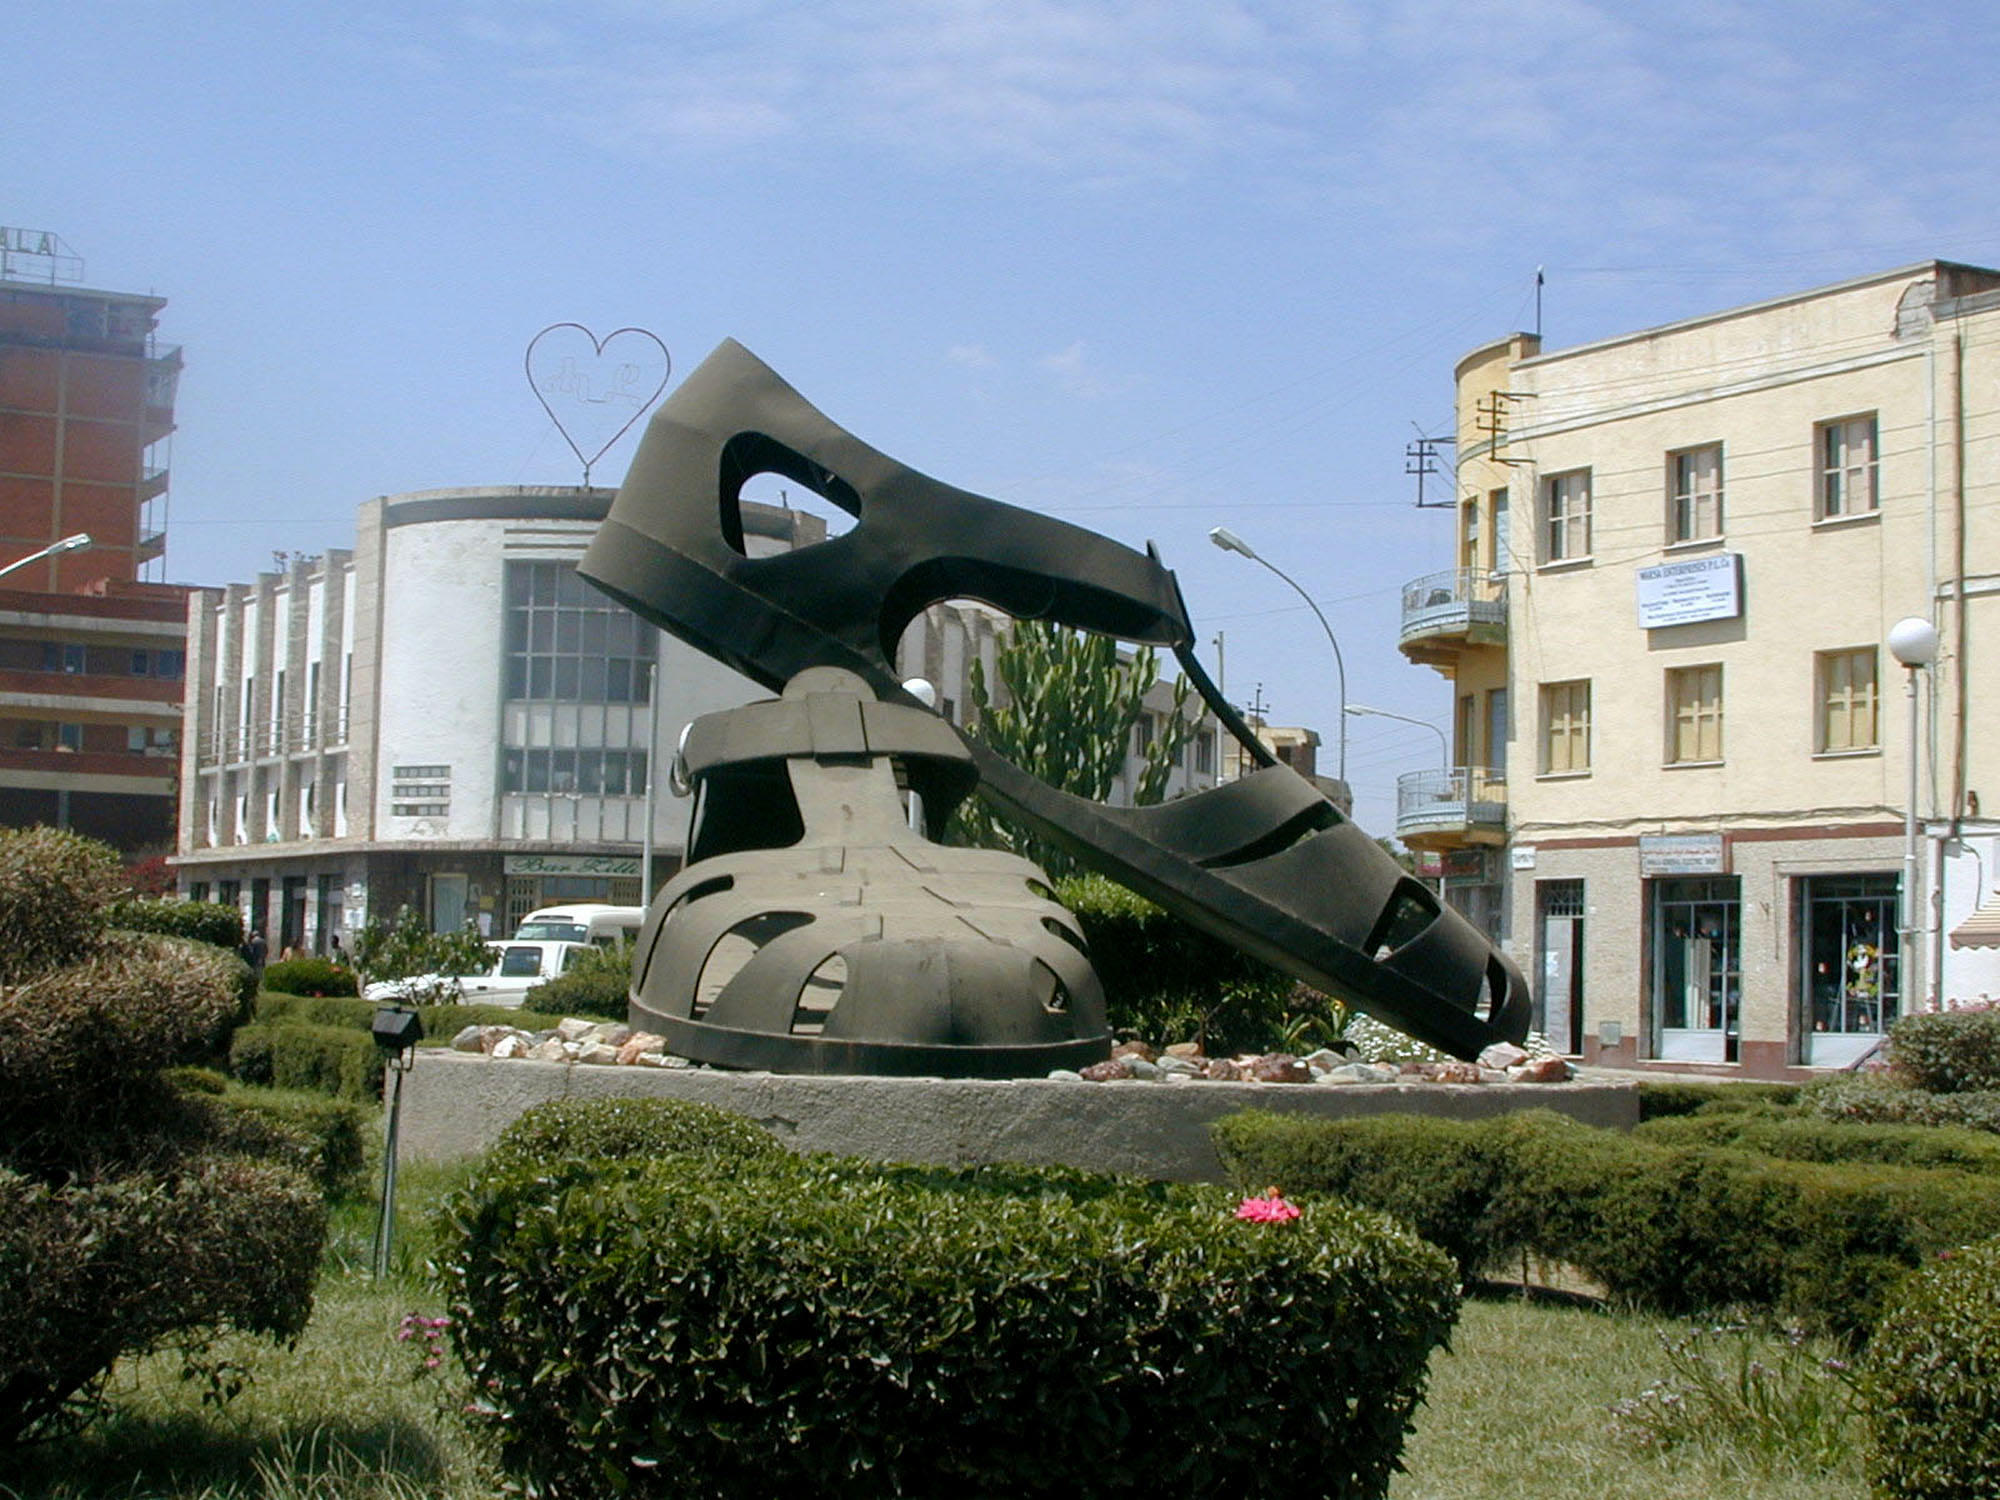 Traffic moves around a sculpture of a giant pair of sandals which has been built on a roundabout in the center of Asmara, Eritrea, Oct. 11, 2001. The sandals are the latest monument to the 30-year war Eritreans endured to win independence from neighboring Ethiopia.